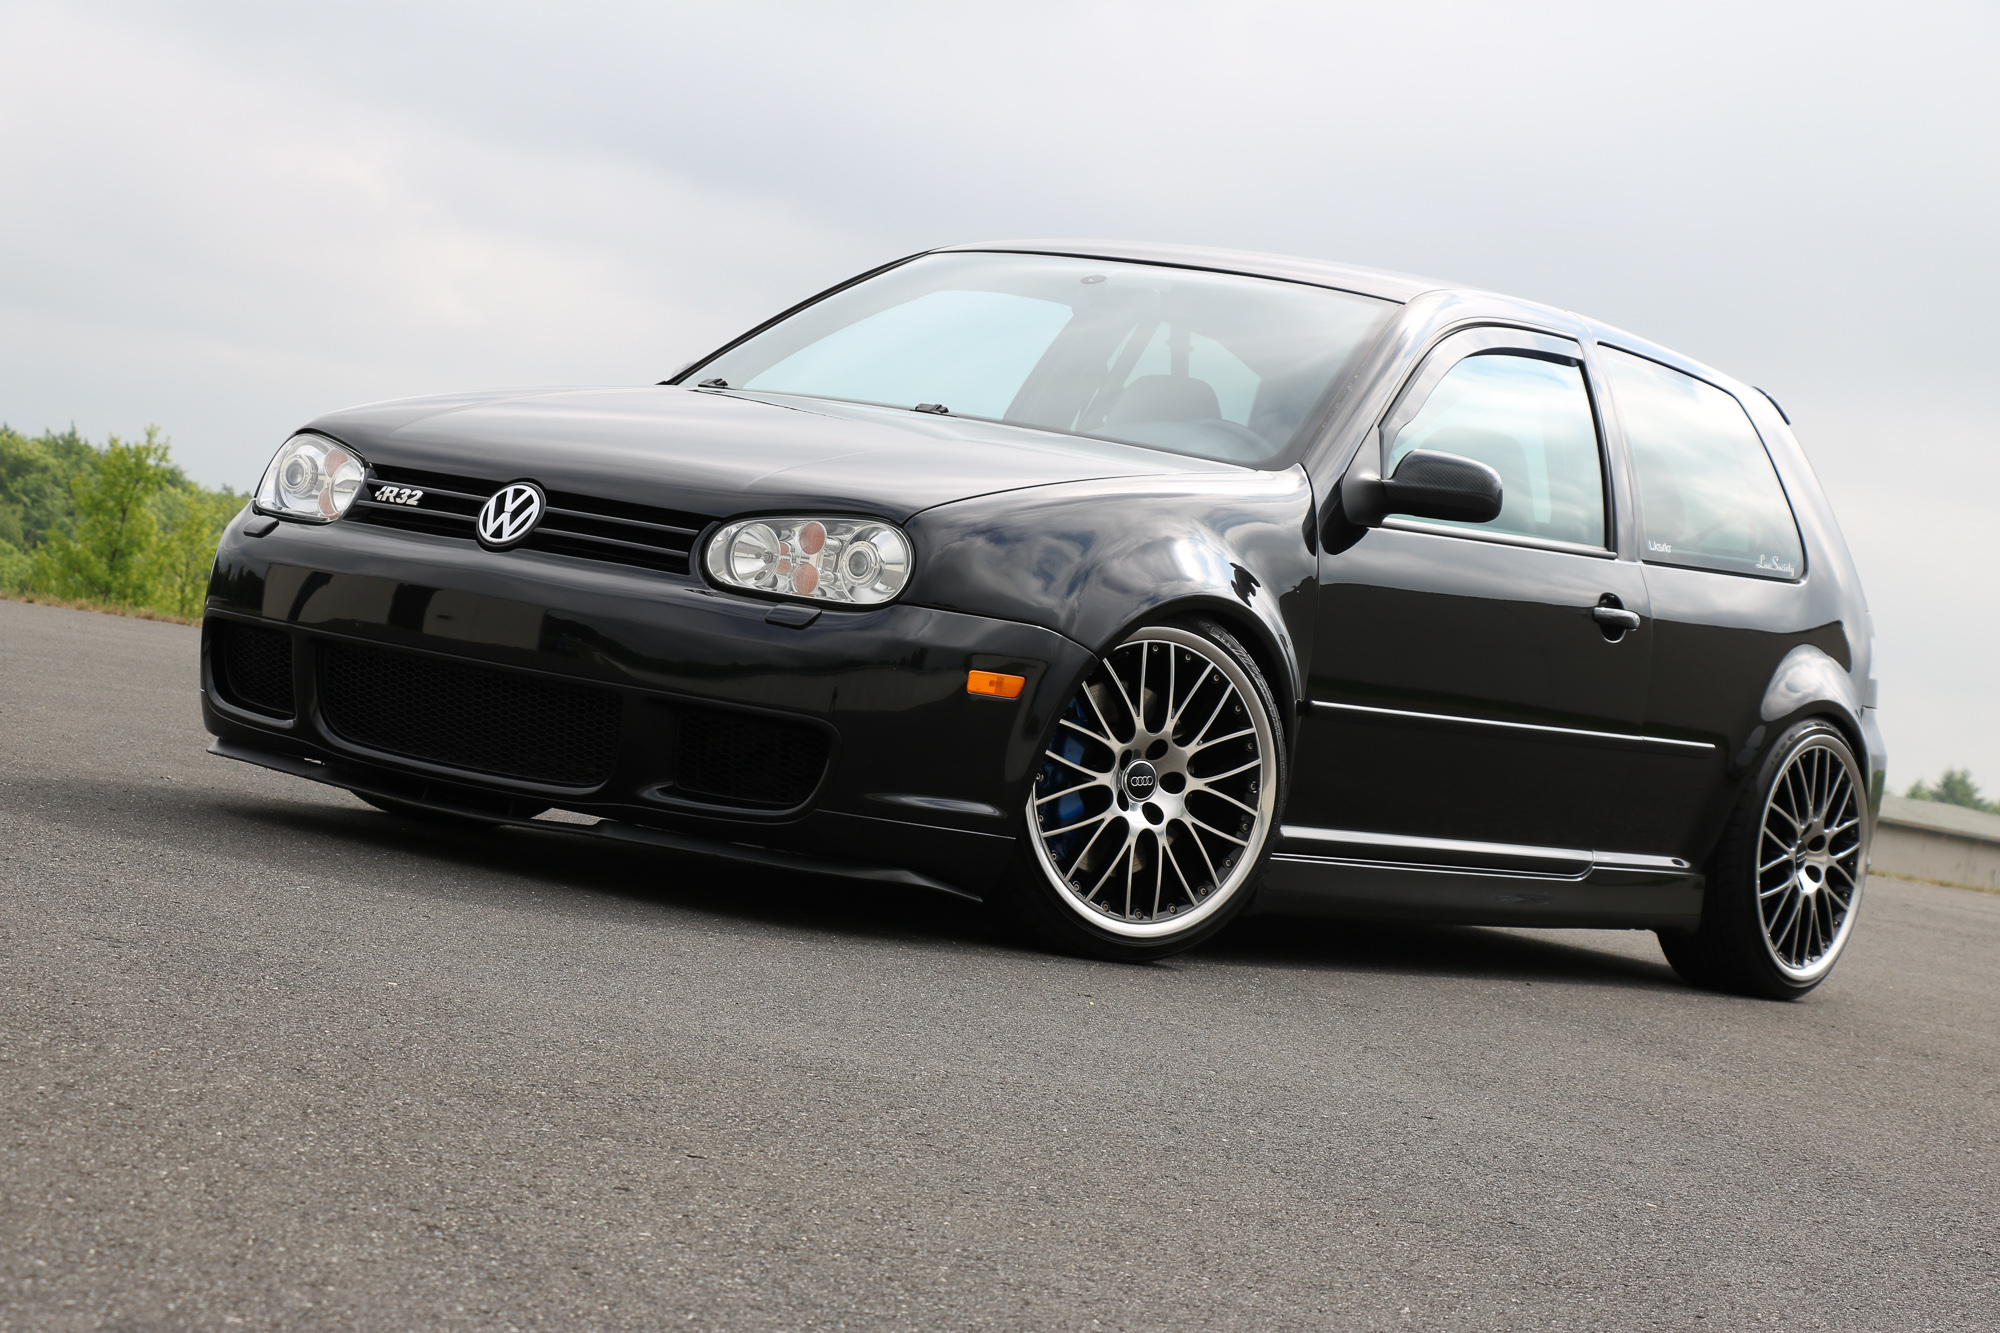 2002 vw golf 4 r32 ausfahrt tv tuning s01 e09. Black Bedroom Furniture Sets. Home Design Ideas